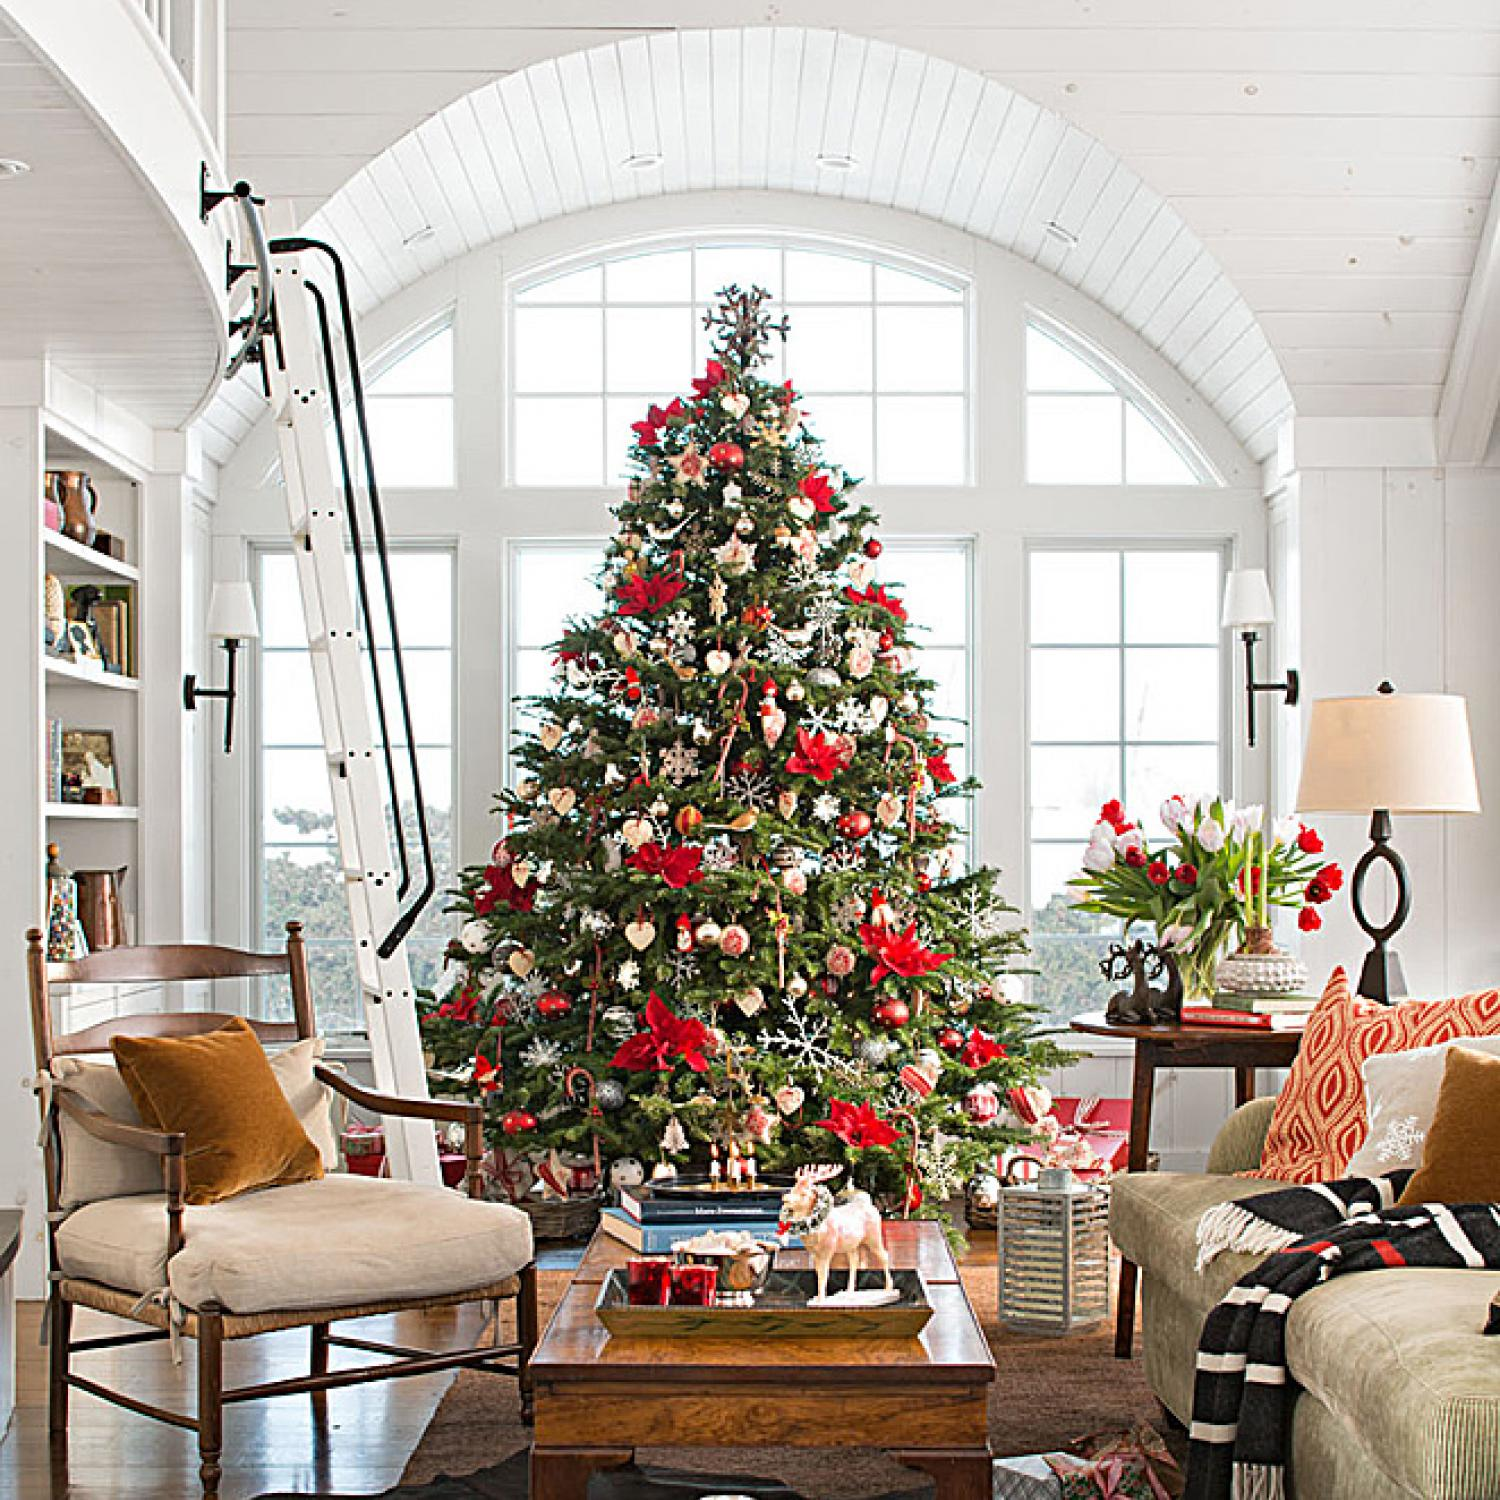 Snowy vermont home ready for christmas traditional home for Christmas home design